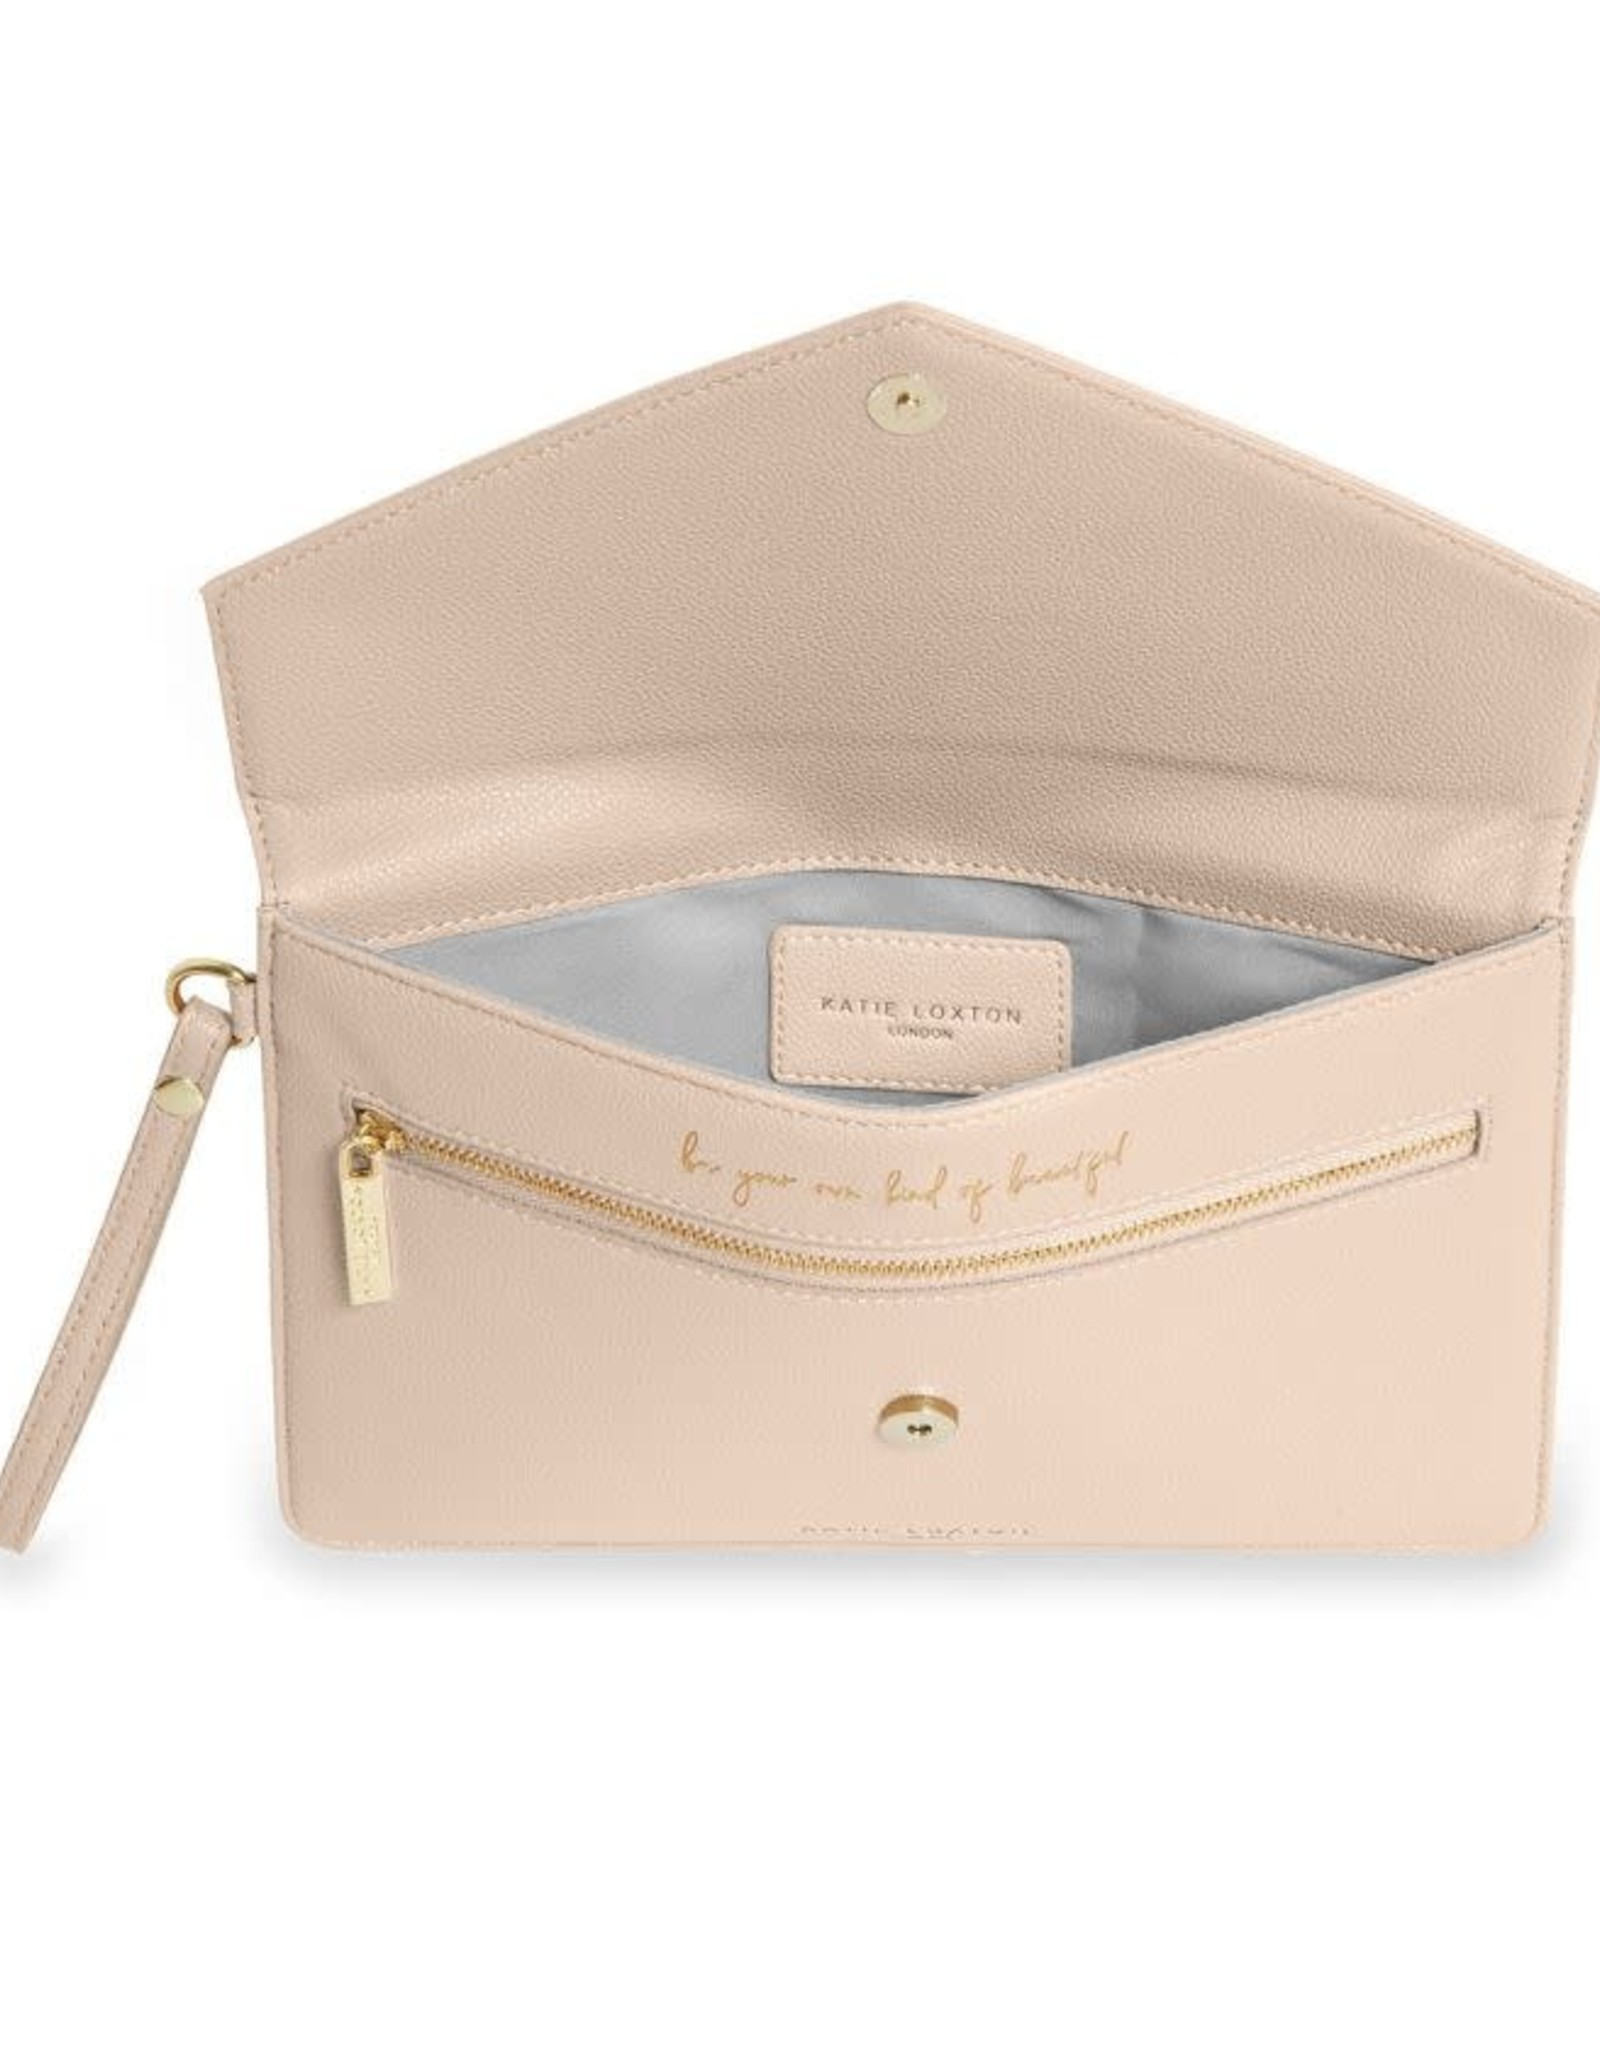 Katie Loxton Esme Envelope Clutch Beautiful Nude Pink